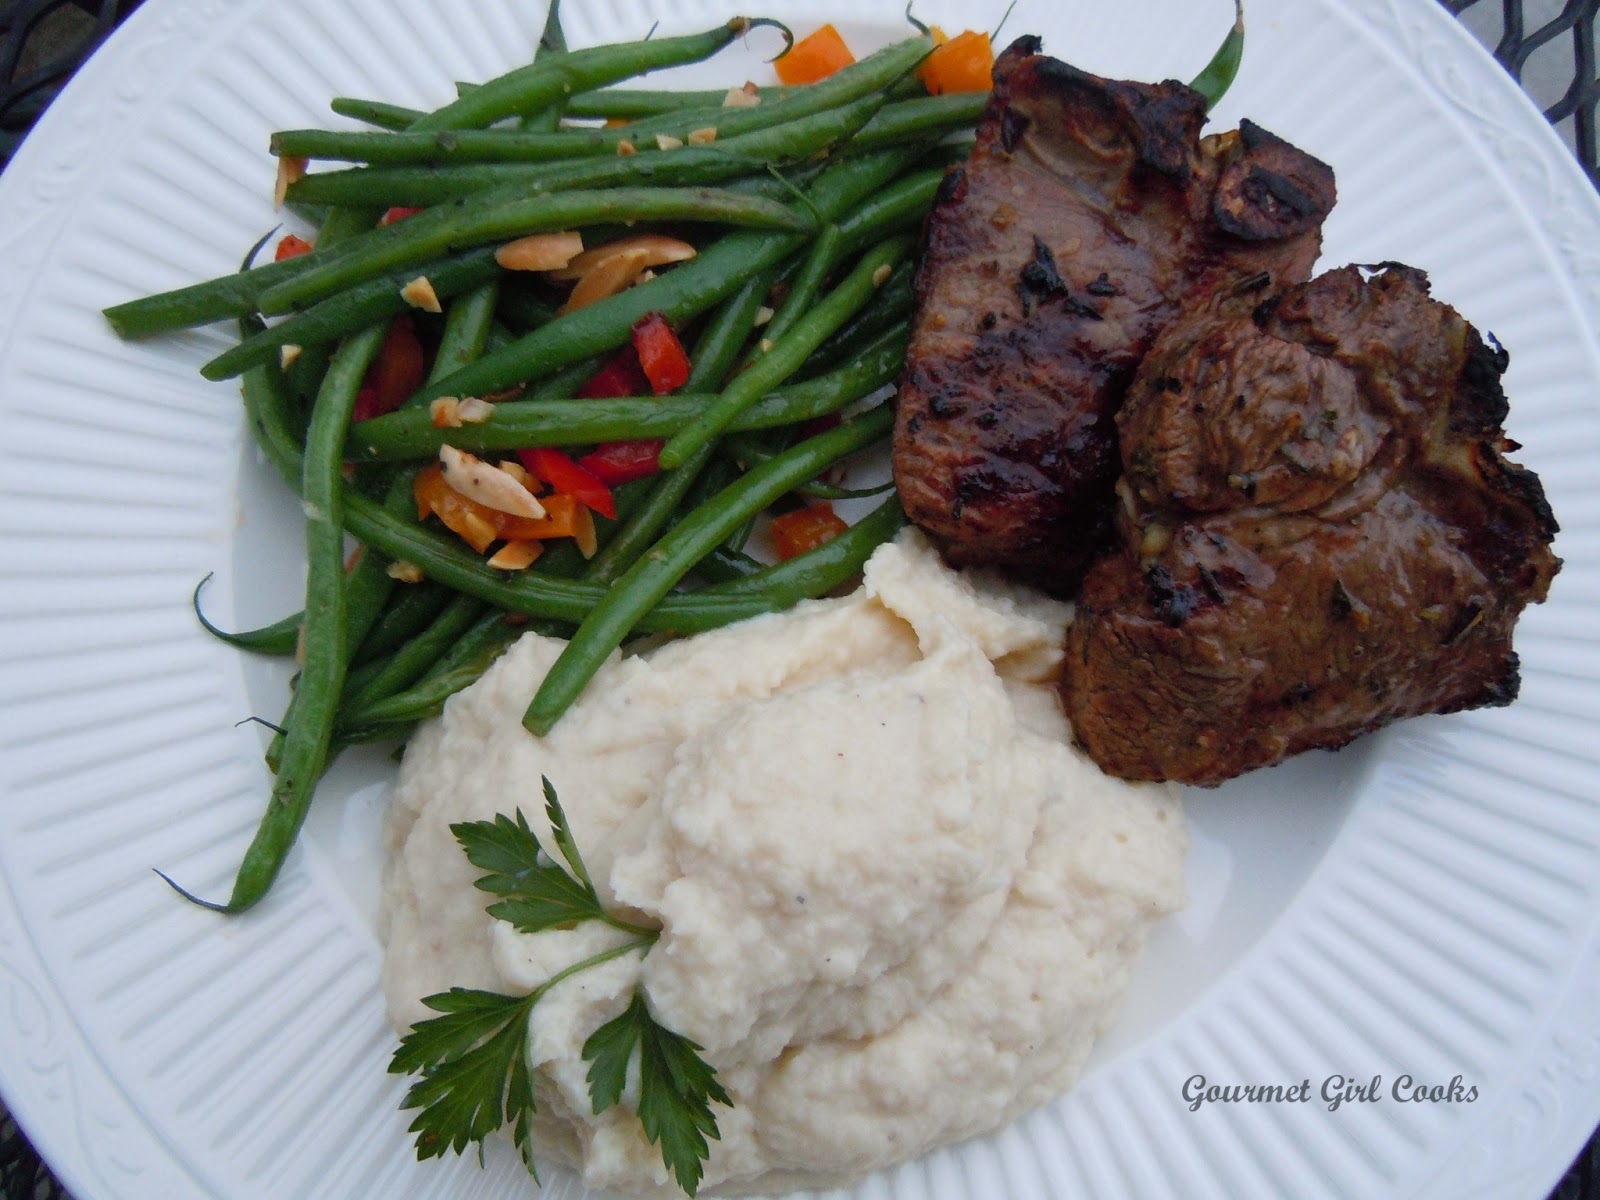 Gourmet Girl Cooks: Greek Style Marinated Grilled Lamb Chops